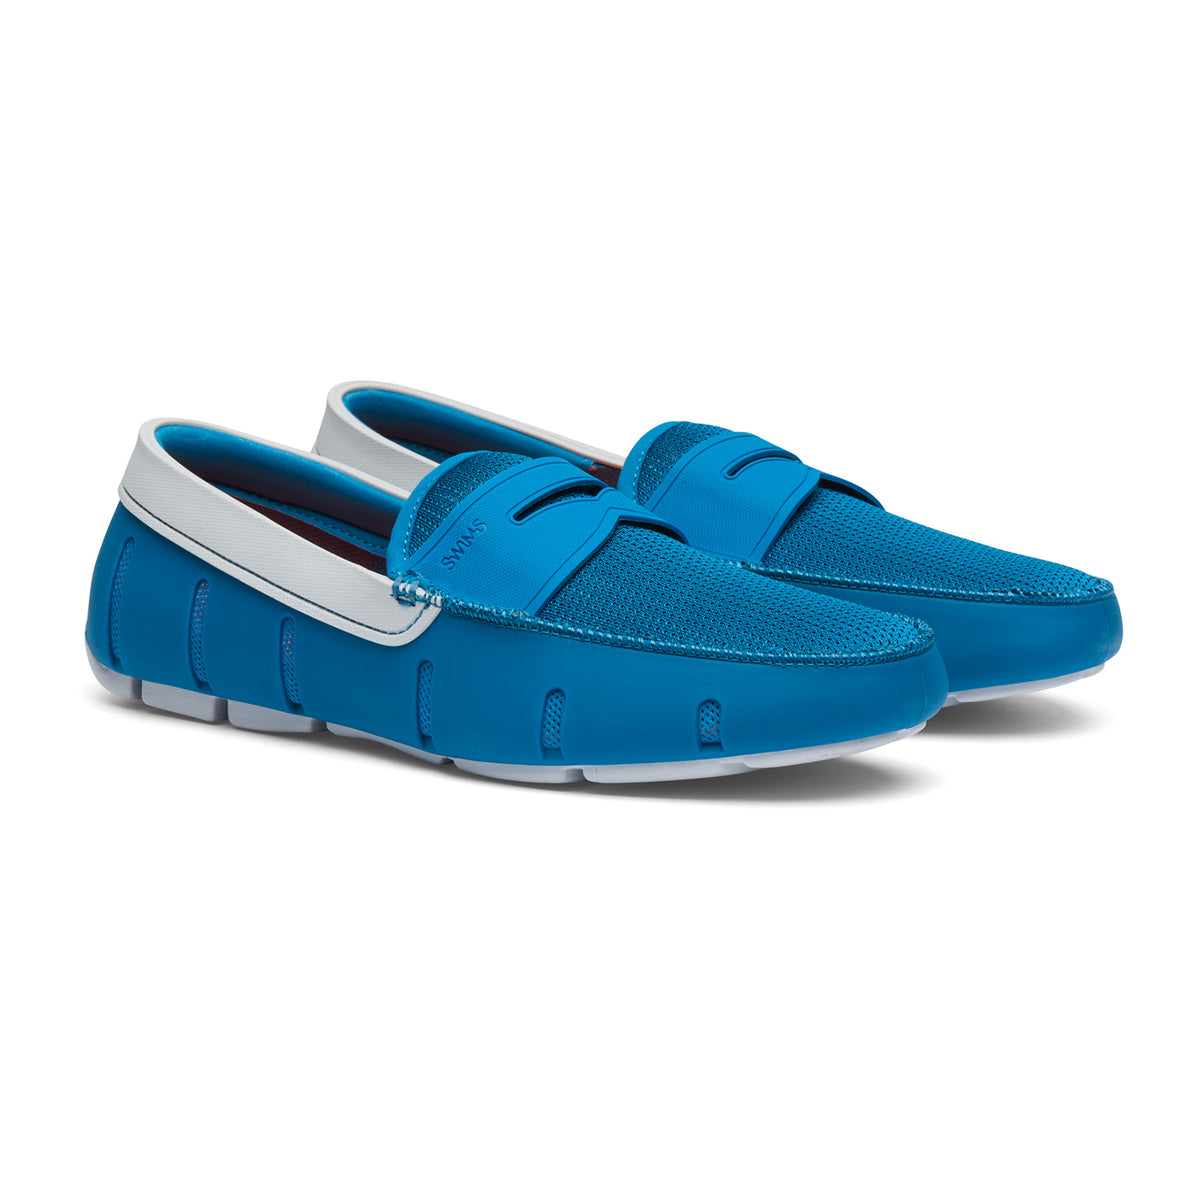 Penny Loafer - background::white,variant::Seaport Blue/Alloy